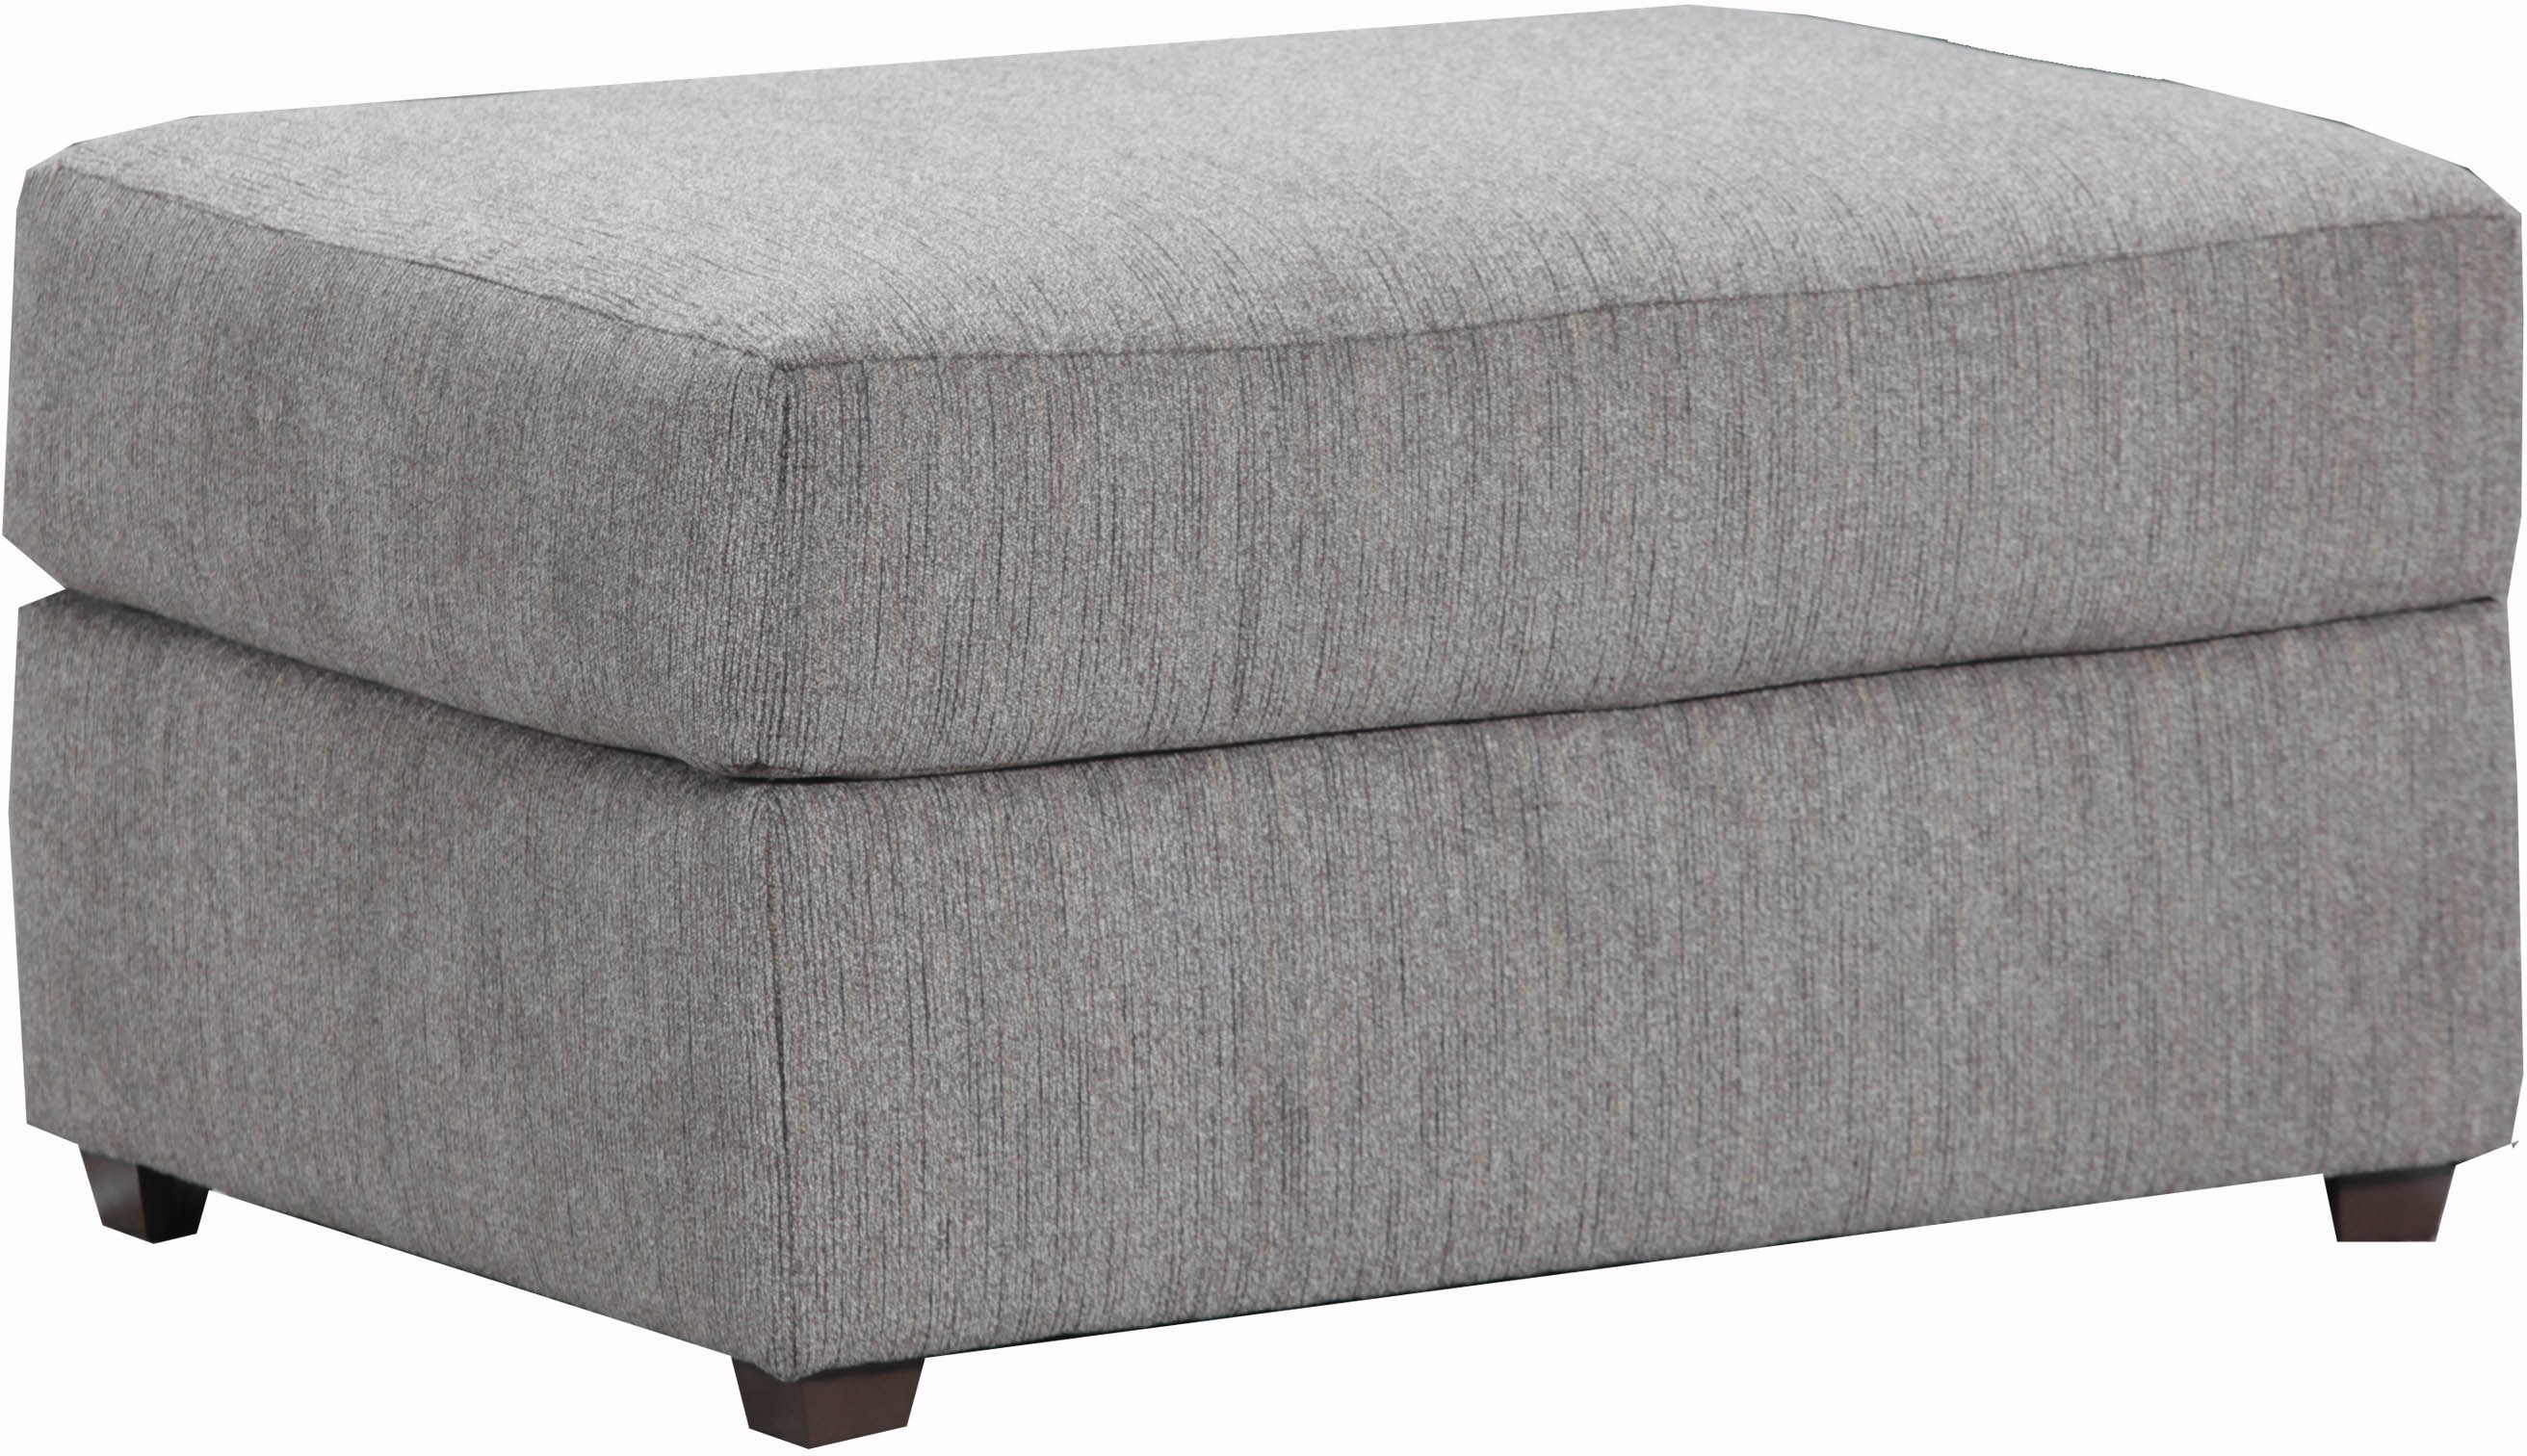 Simmons Upholstery amp Casegoods Living Room 8540 BR Ottoman  : 8540br grandstand walnut ottoman from www.furnituremarketplaceonline.com size 1024 x 768 jpeg 78kB